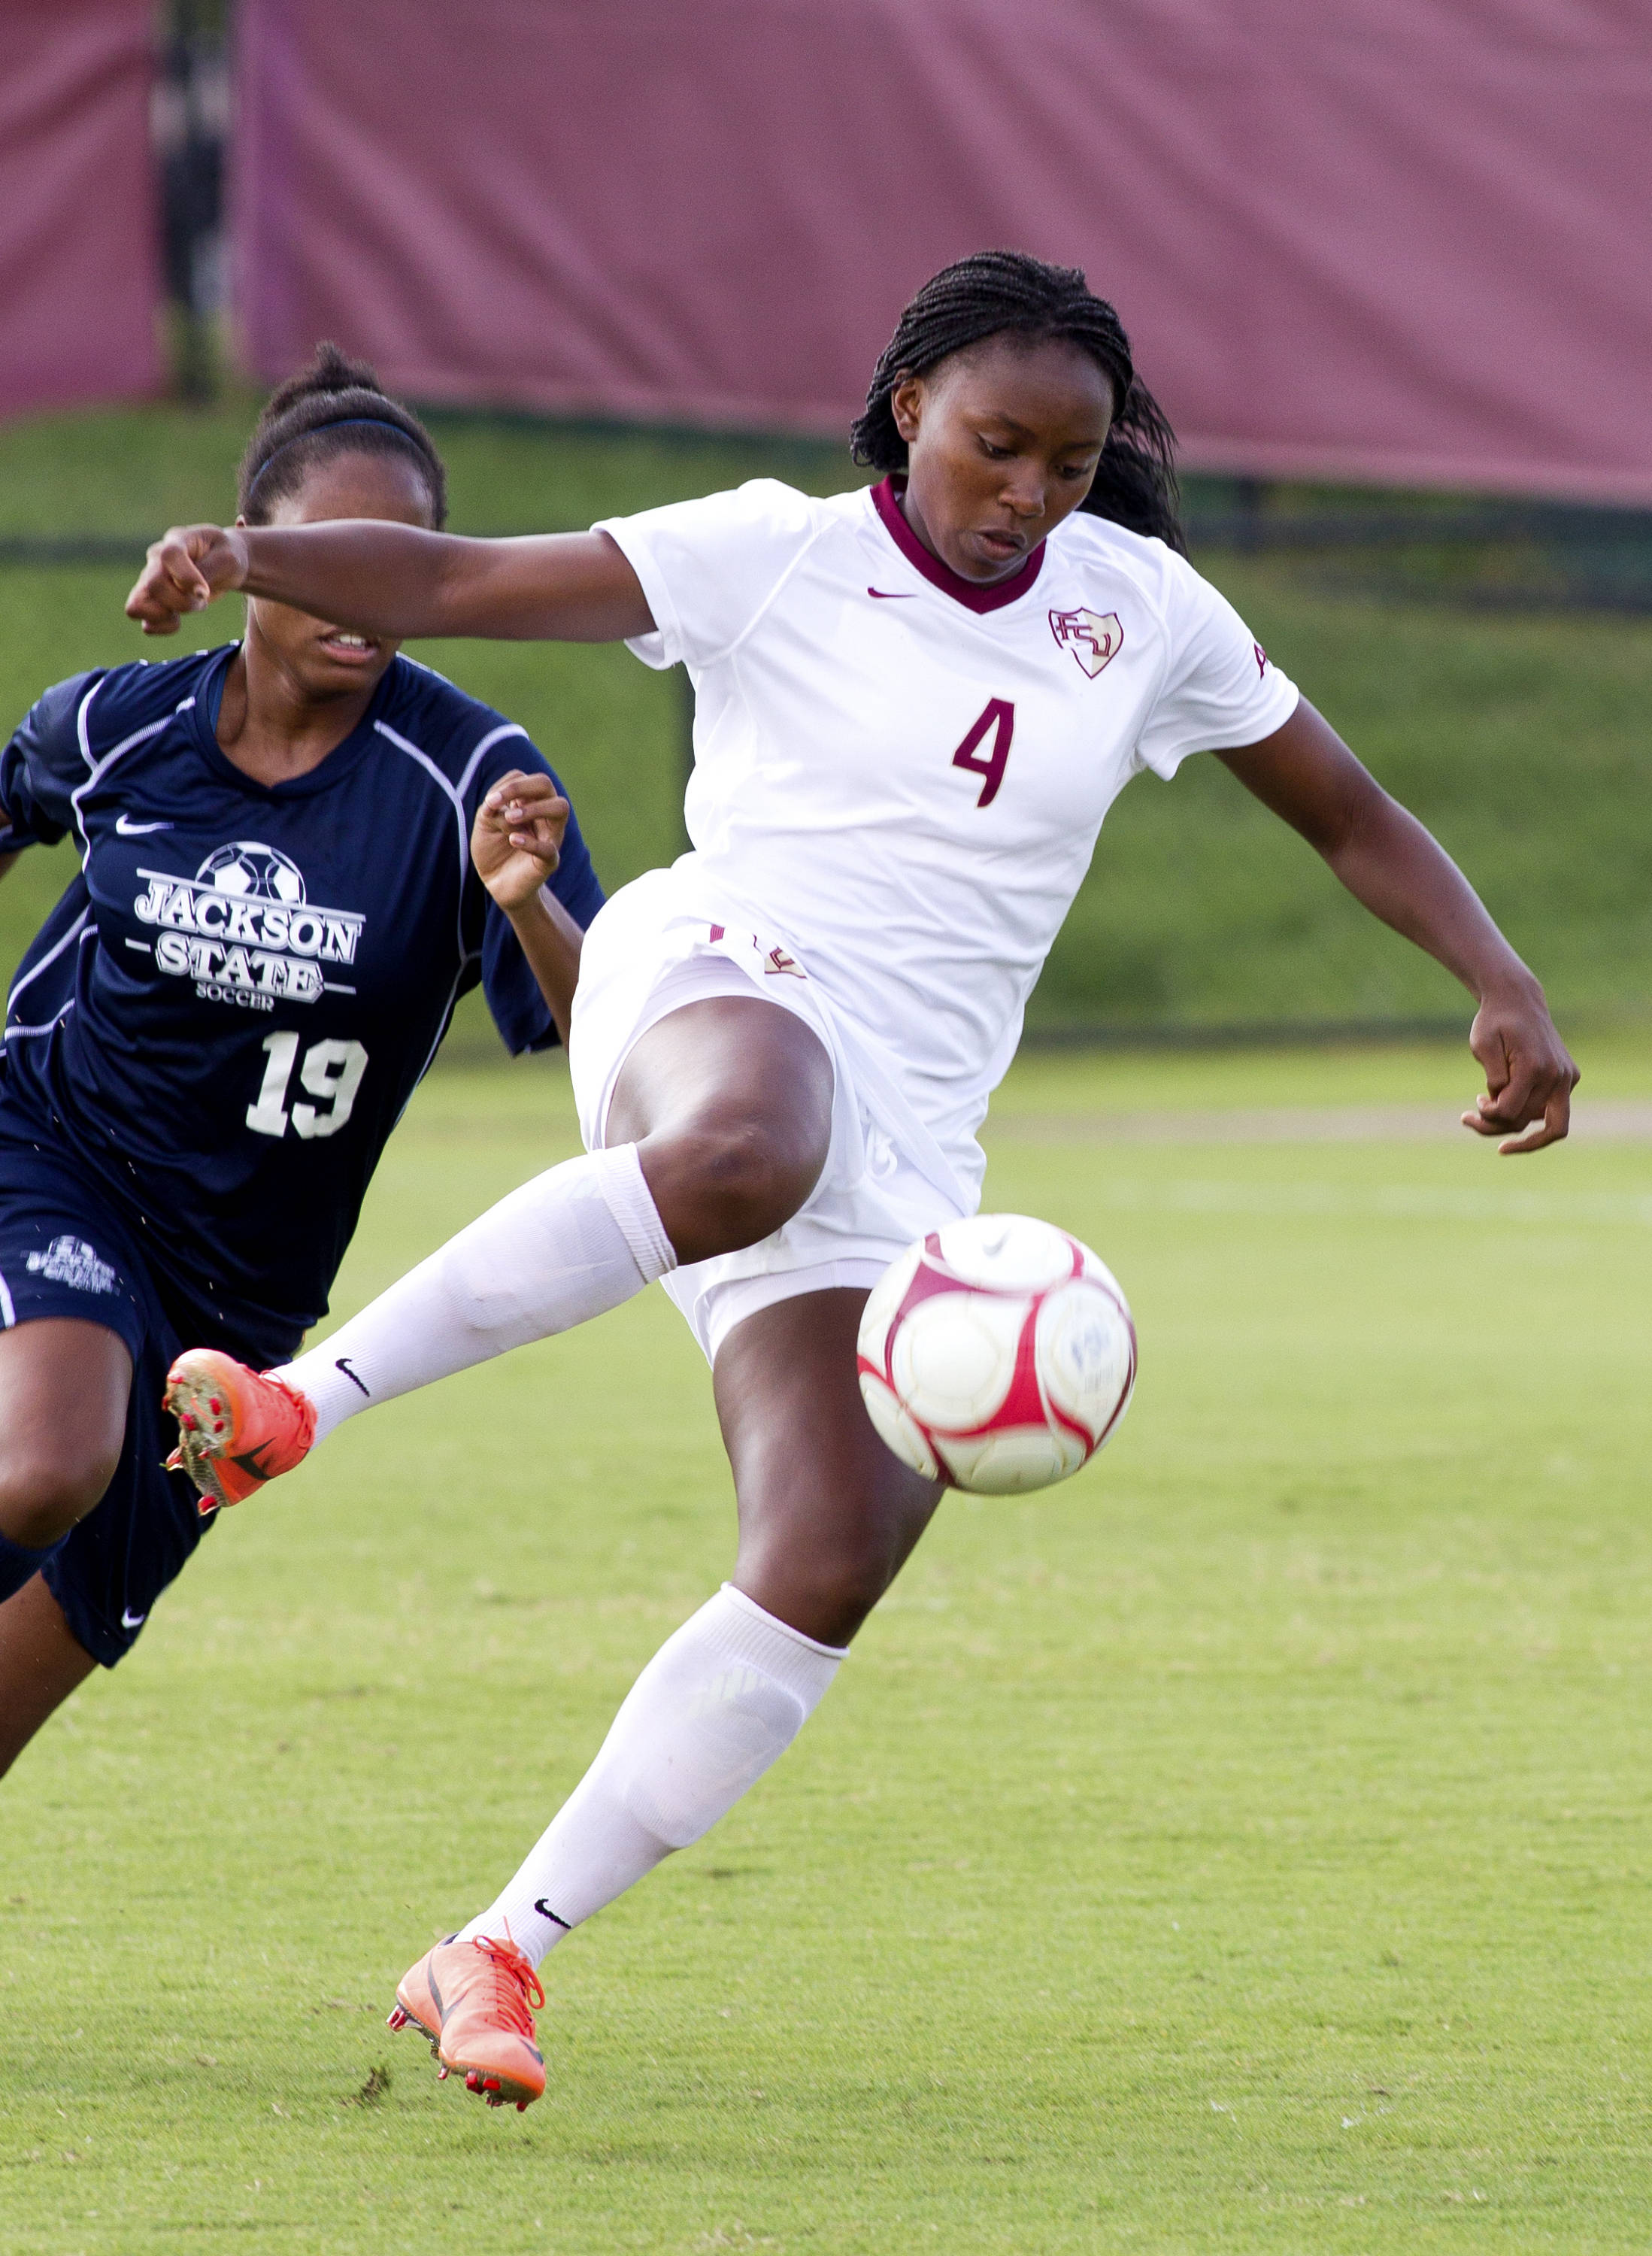 Jamia Fields (4), FSU vs Jackson State, 9/21/12 (Photo by Steve Musco)